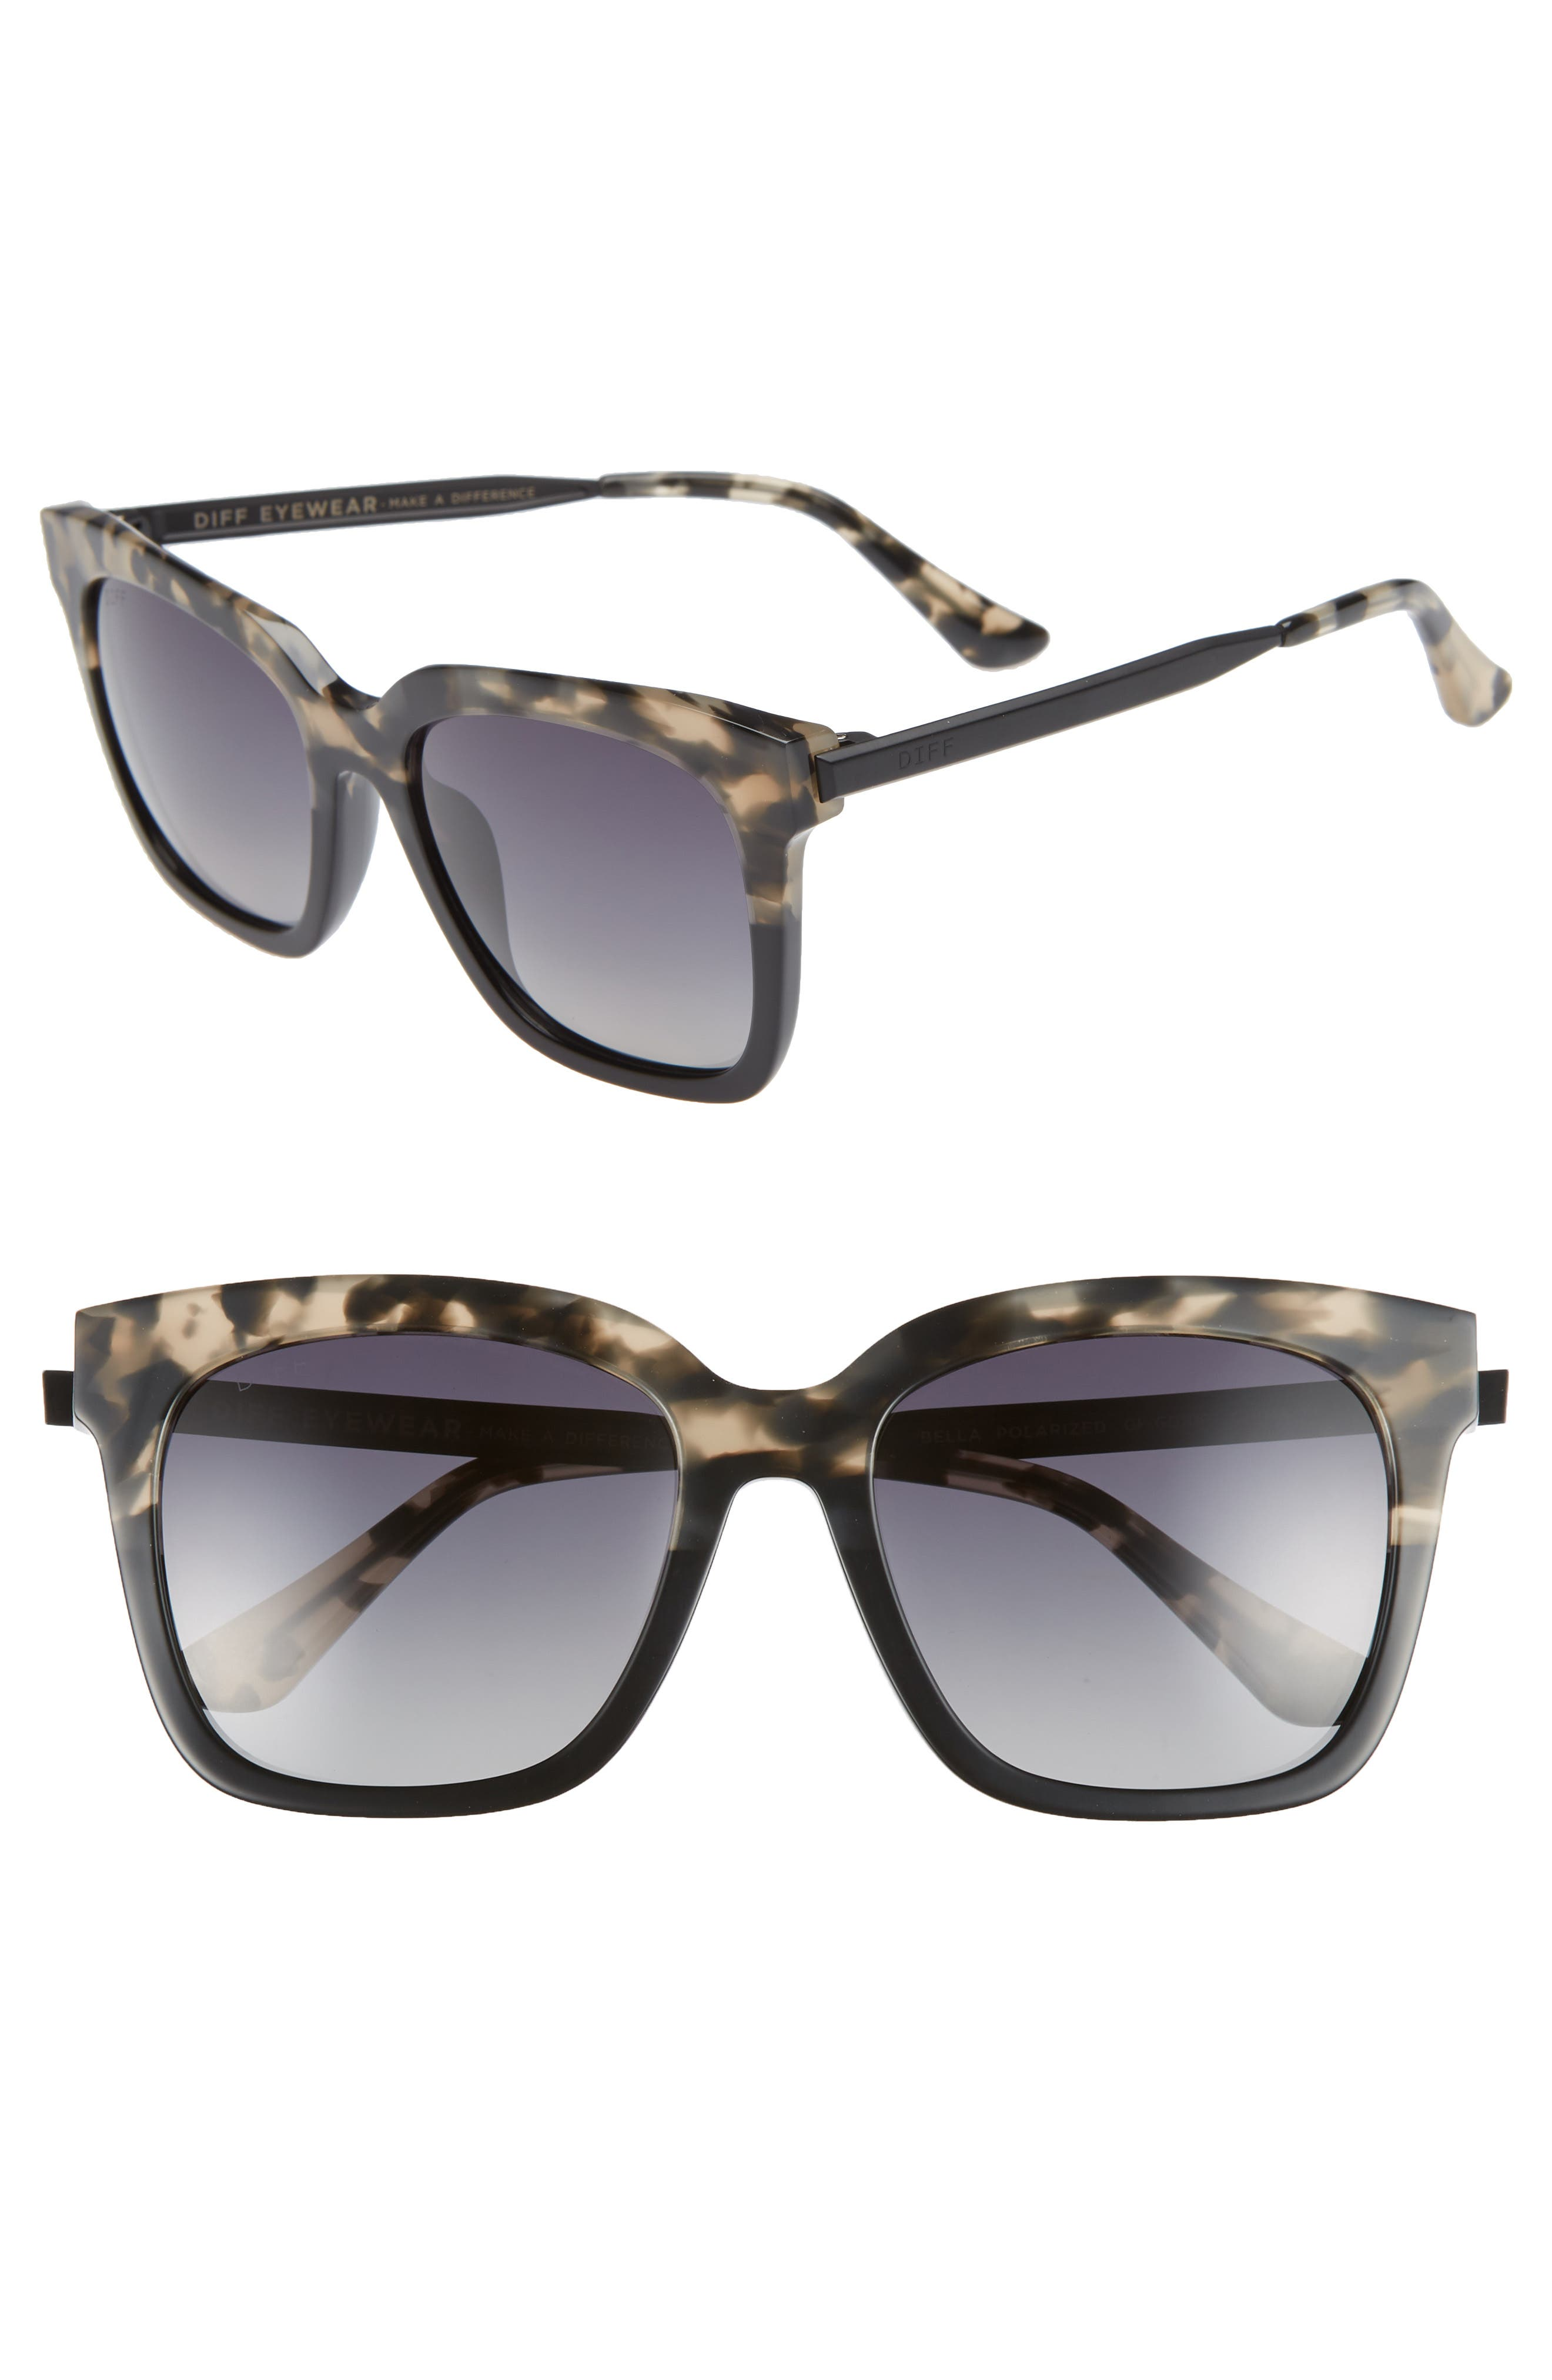 79f505610f DIFF Sunglasses for Women